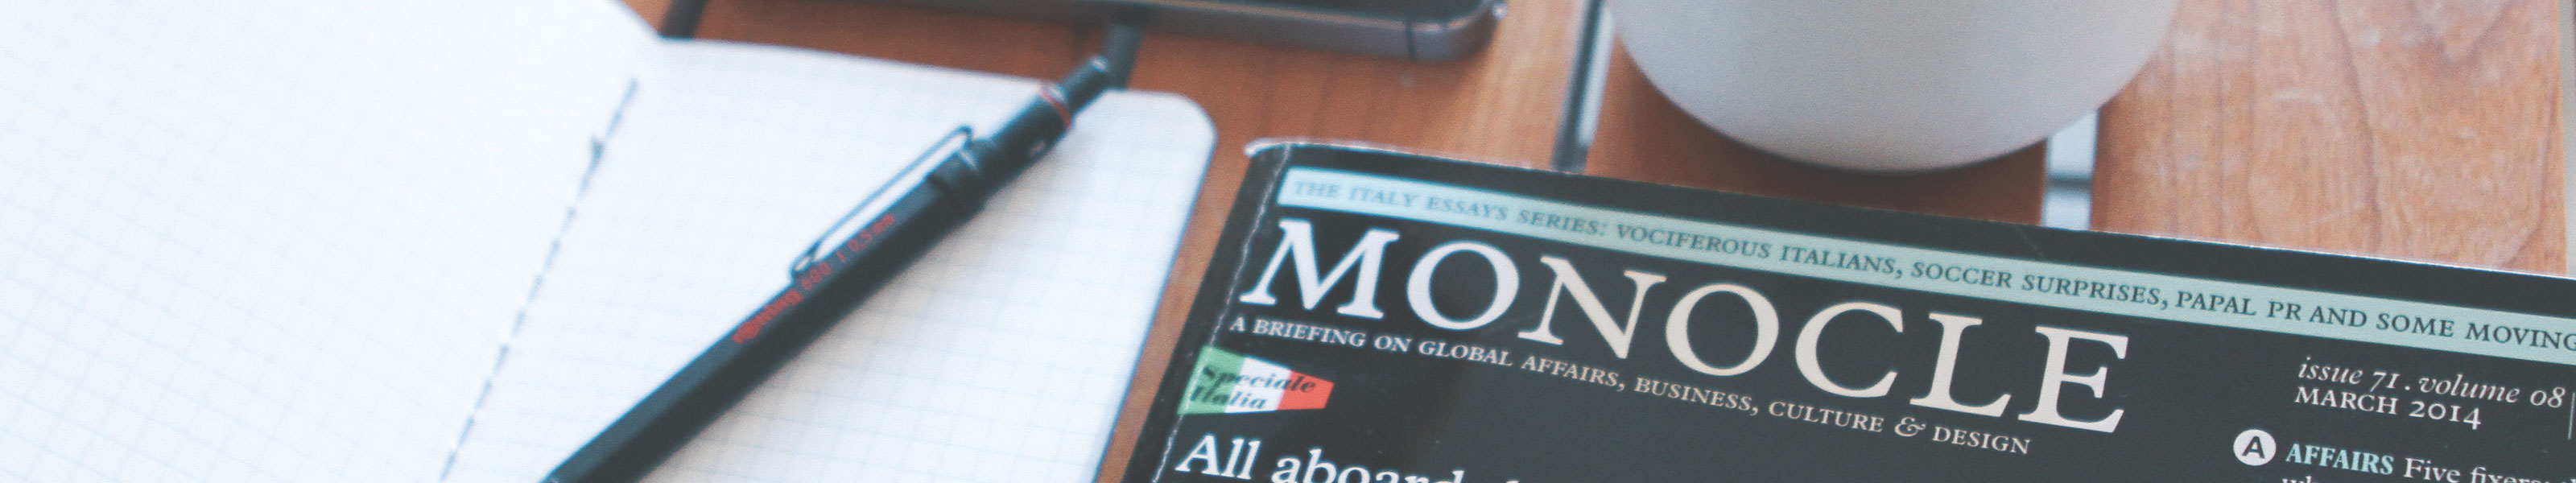 Monocle header.jpg?ixlib=rails 2.1